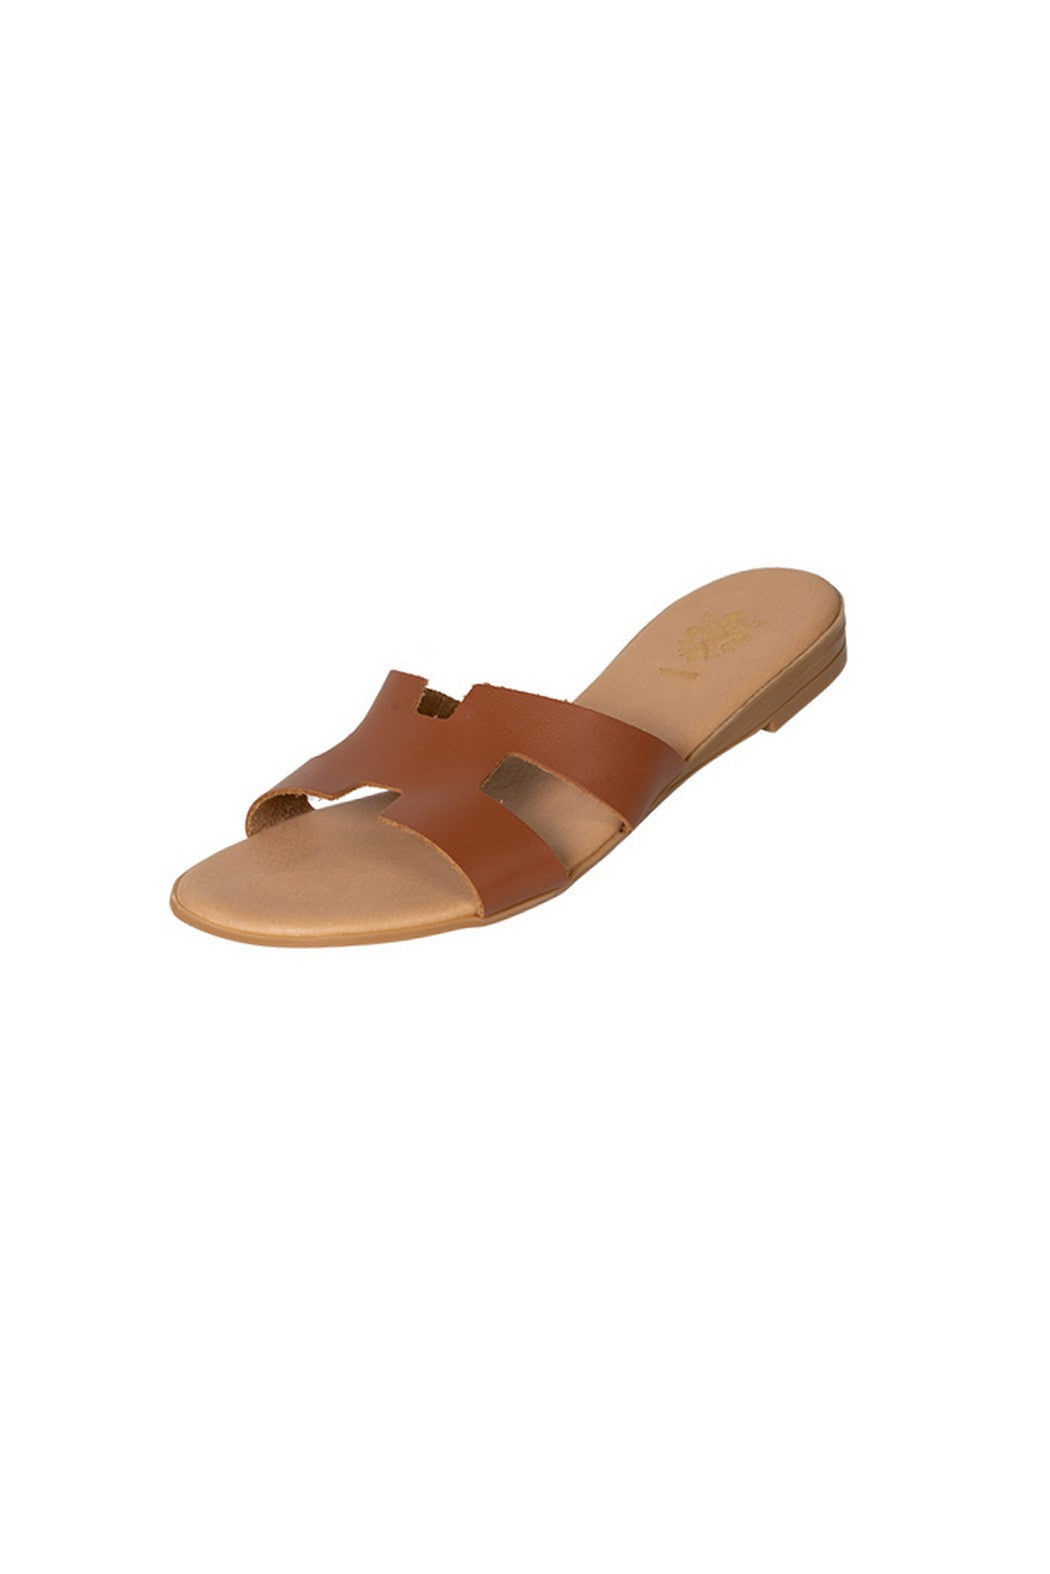 Italian Leather flat tan H slides